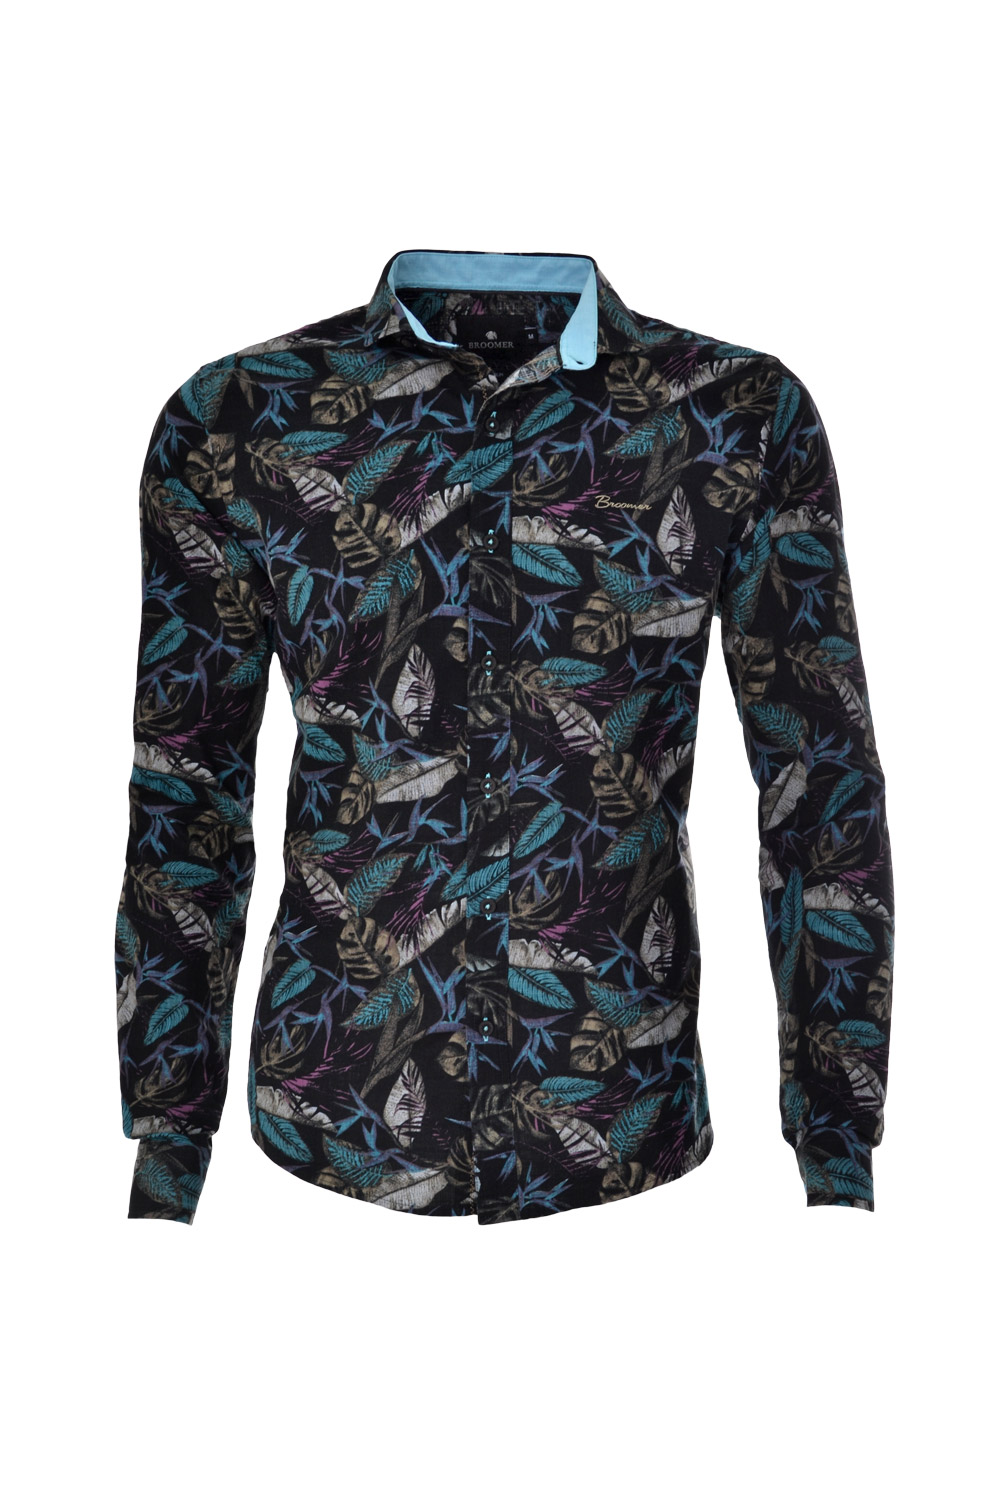 CAMISA ML BLUES SUPER SLIM ALGODAO FIO TINTO FLORAL PRETO